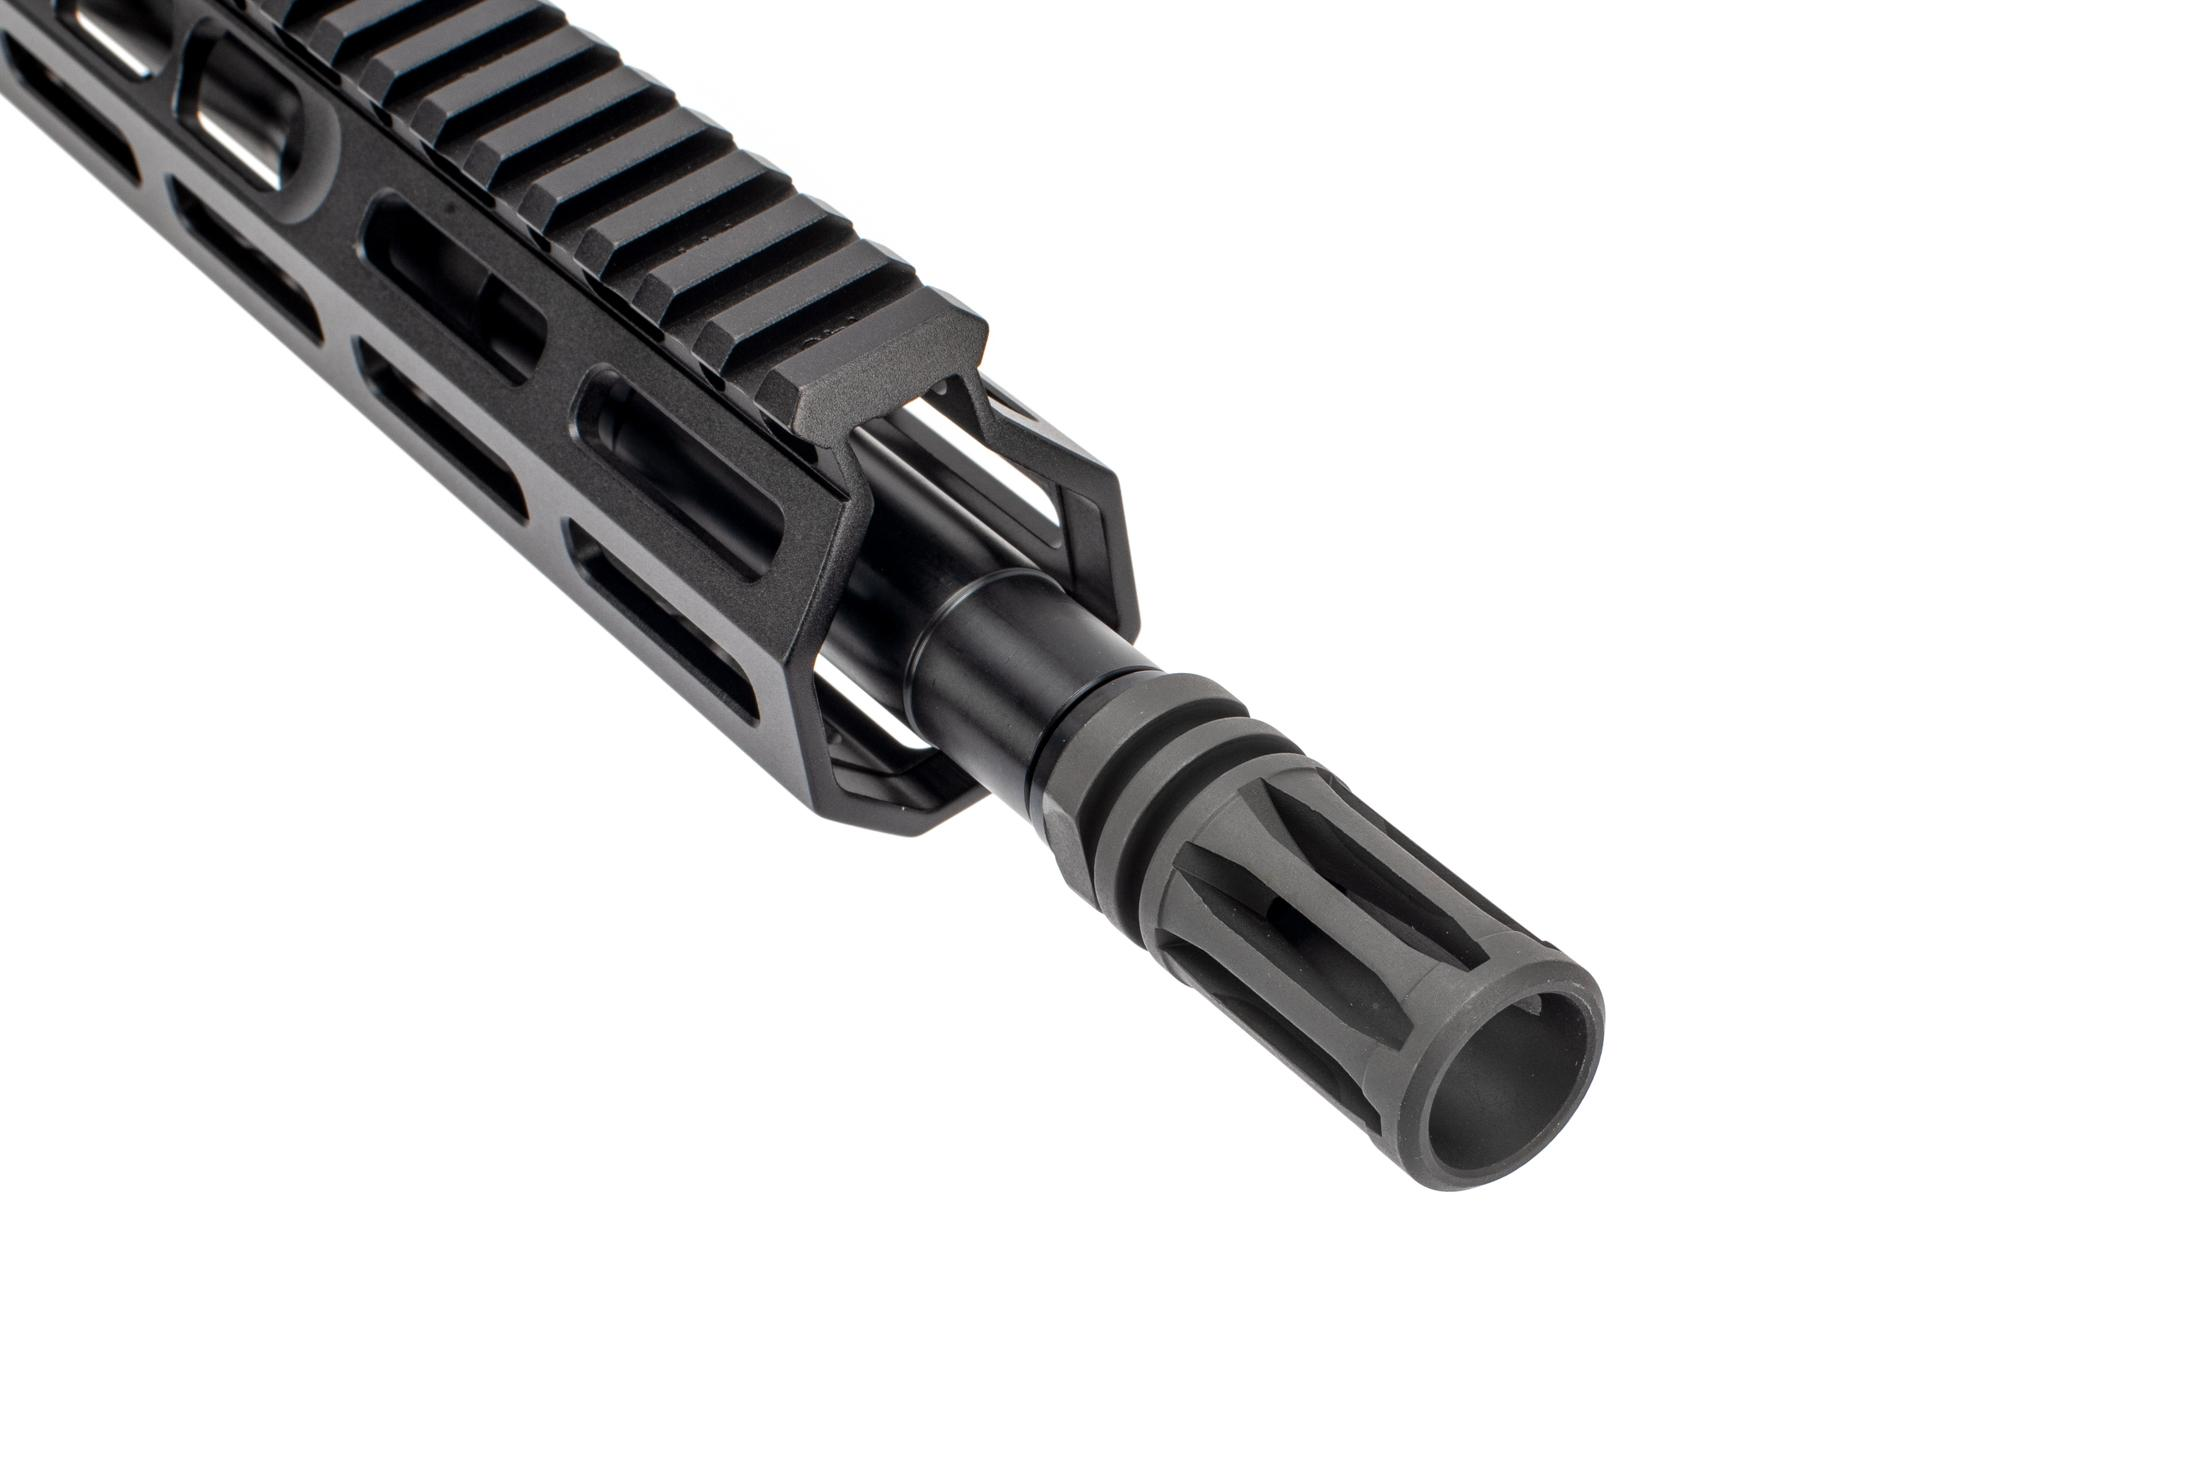 Sons of Liberty Gun Works Barreled AR 15 upper receiver group features the M4-76 handguard